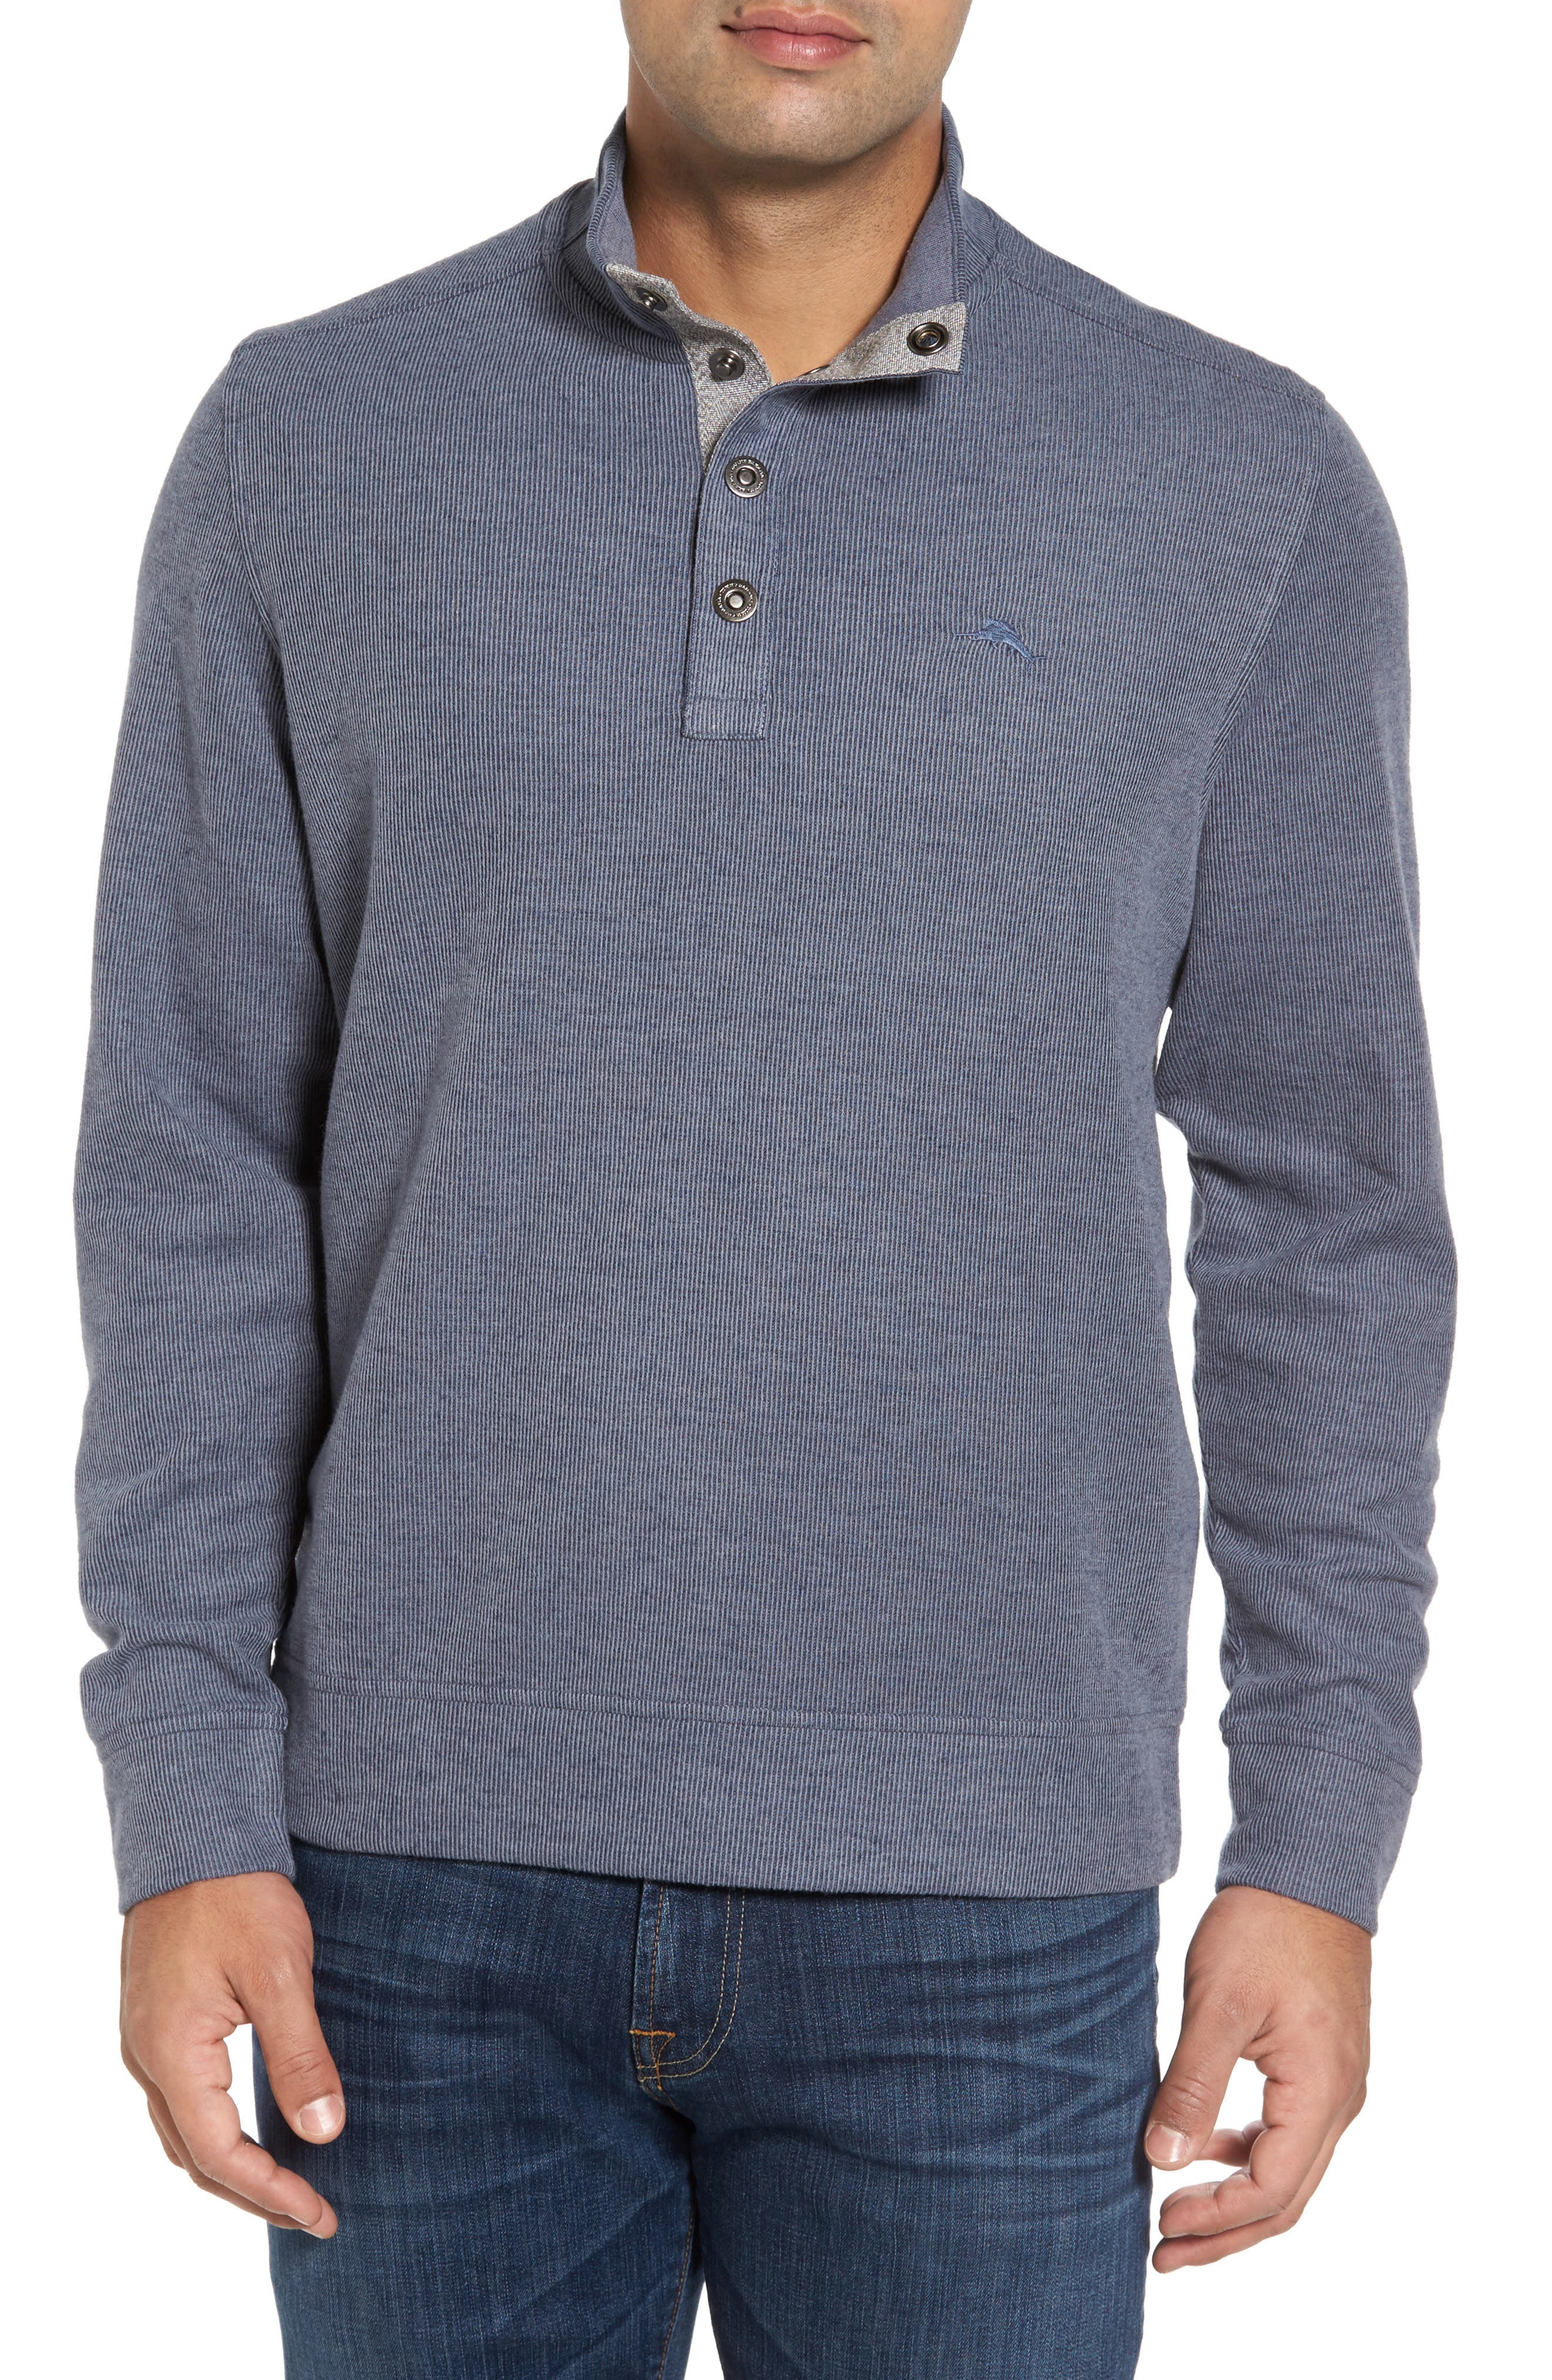 Alternate Image 1 Selected - Tommy Bahama Cold Springs Snap Mock Neck Sweater